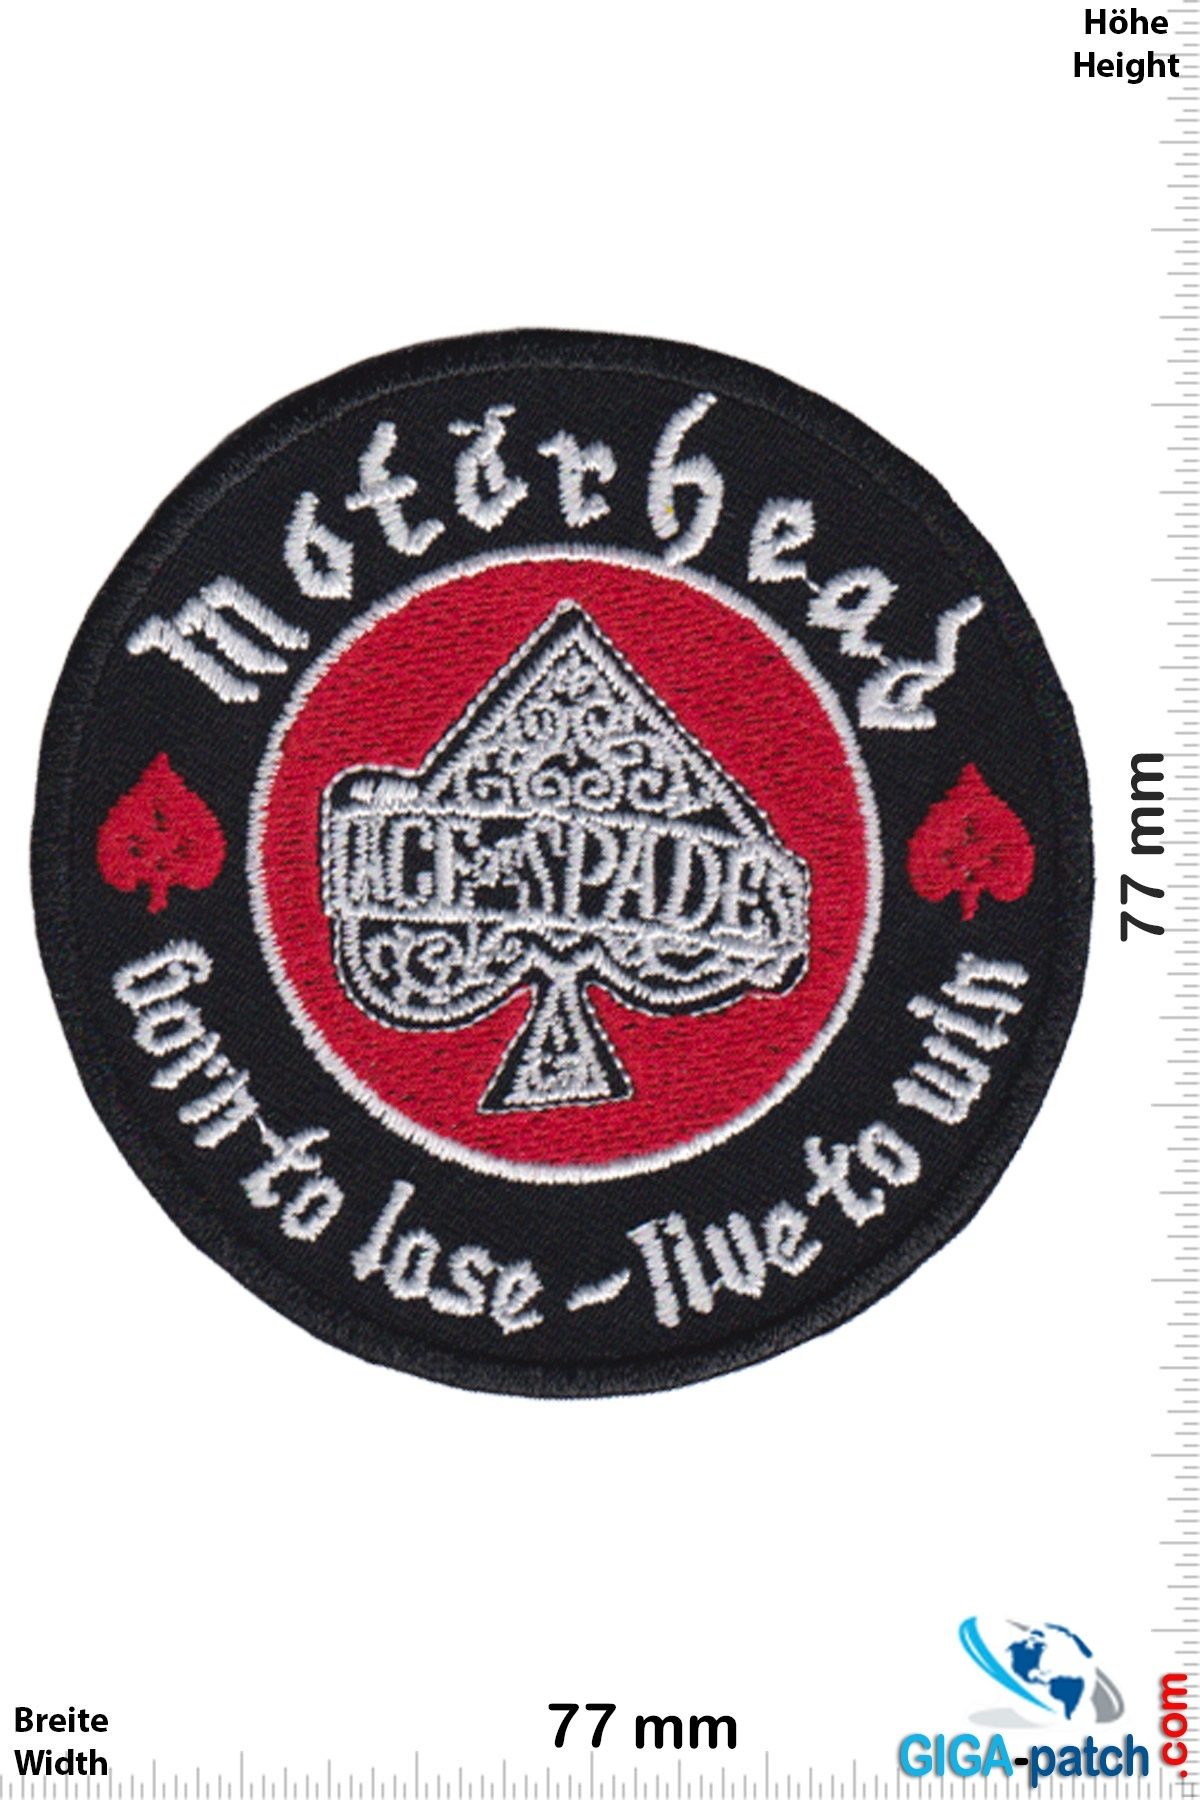 Motörhead Motörhead - born to lose - live to win